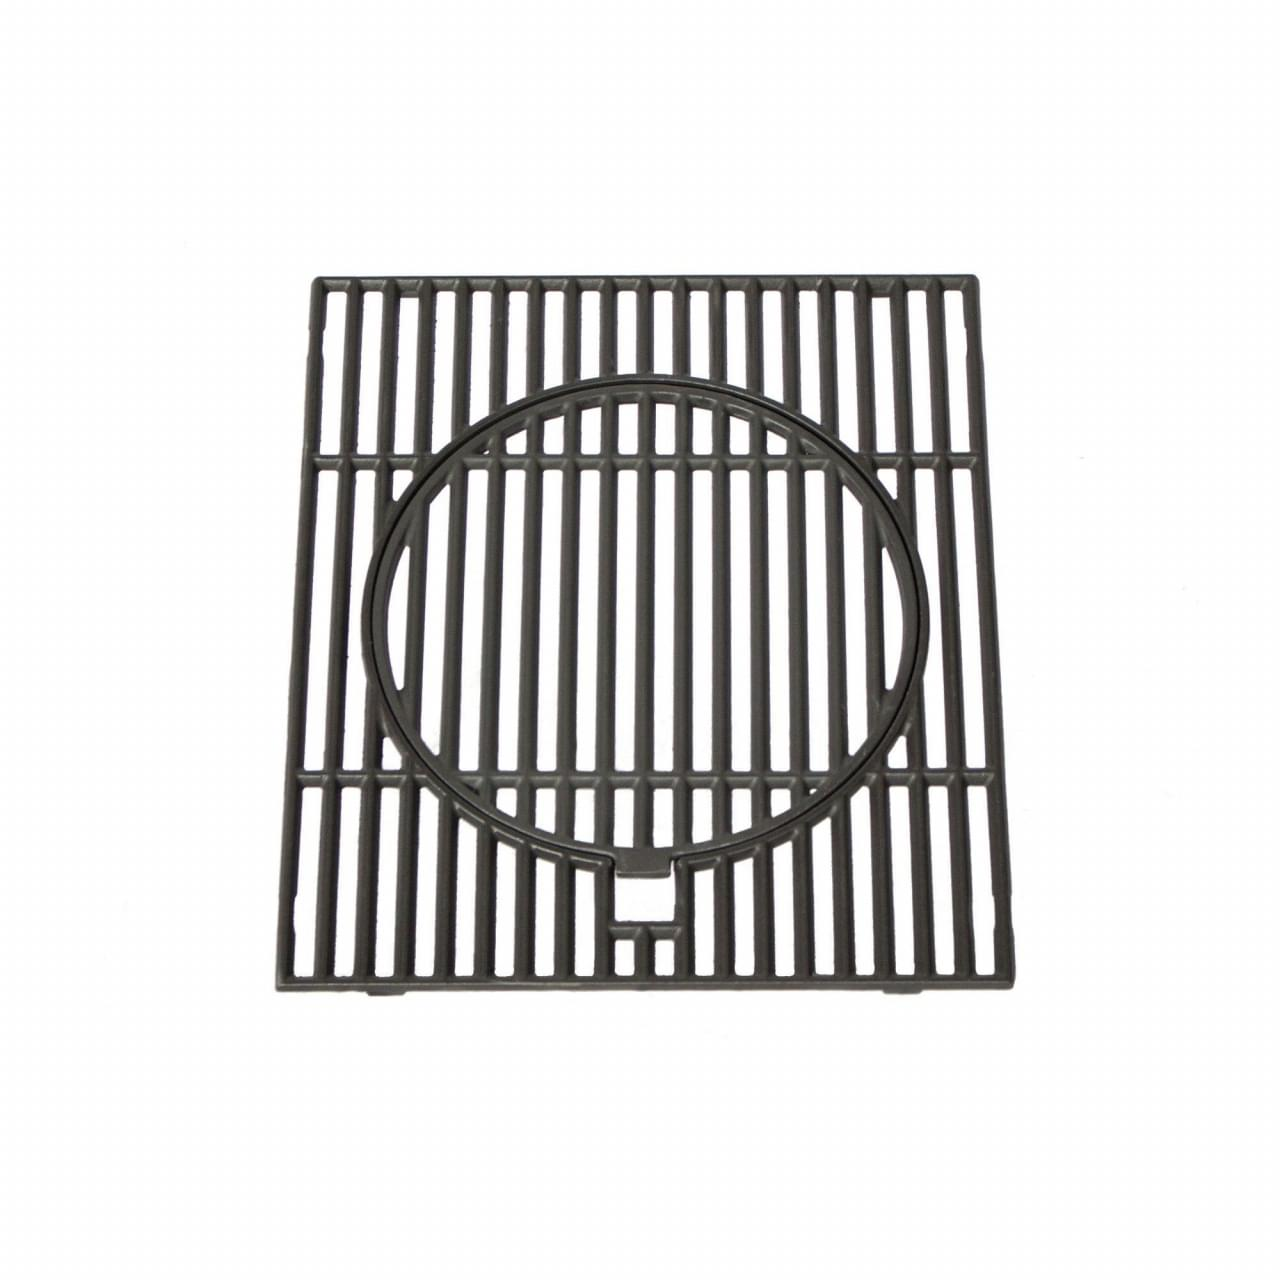 Campingaz Culinary Modular Cast Iron Grid Matt